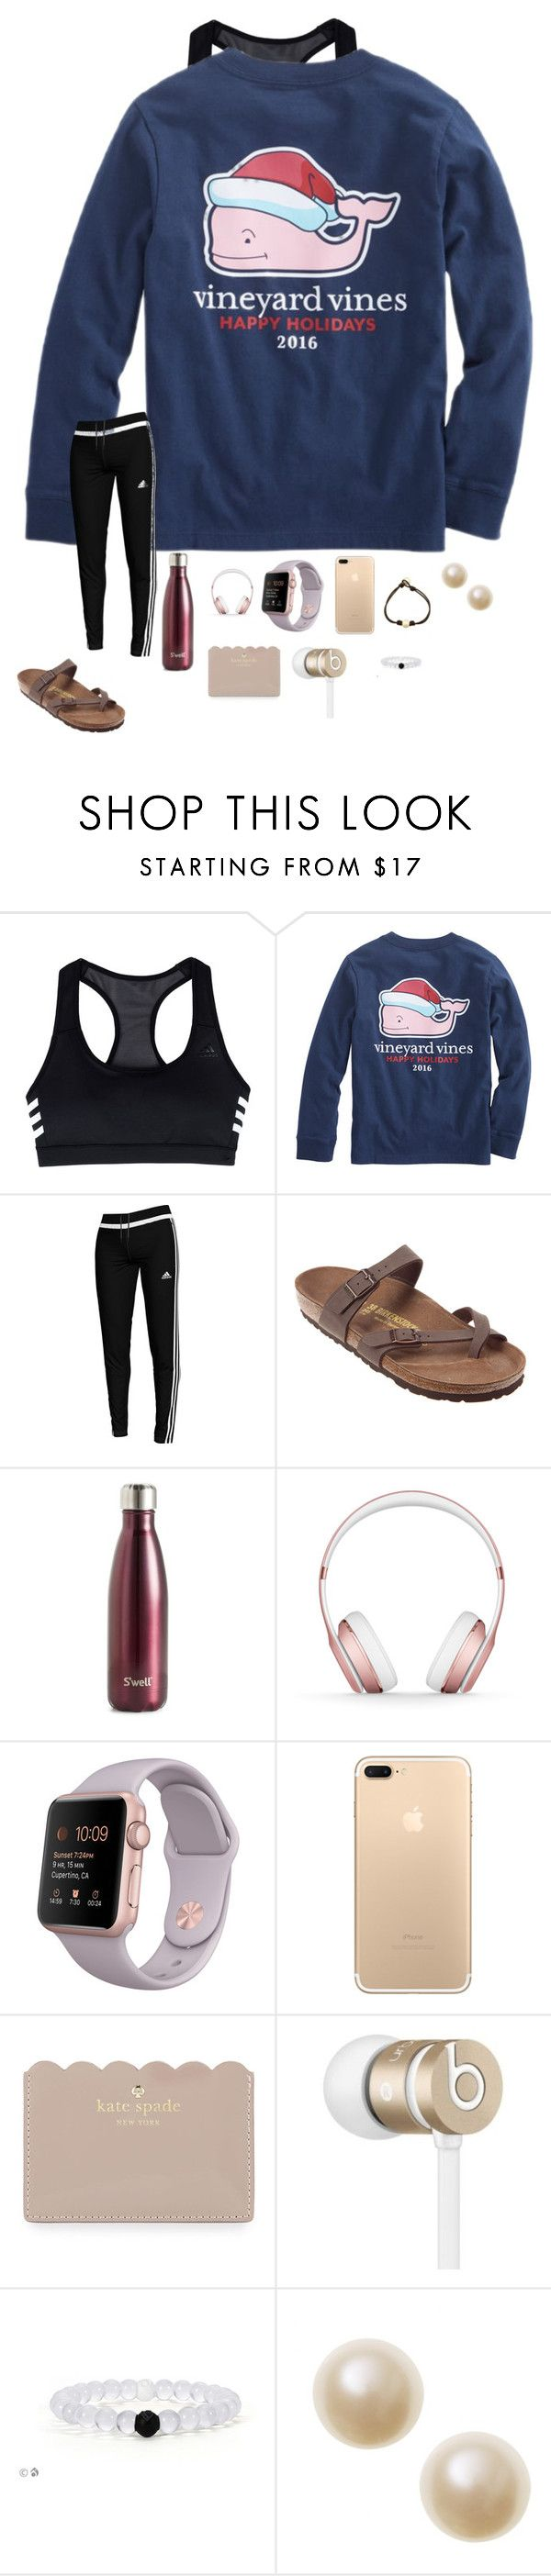 """Christmas shopping for family! (Day 1)"" by mackenzielacy814 ❤ liked on Polyvore featuring adidas, Vineyard Vines, Birkenstock, S'well, Beats by Dr. Dre, Apple, Kate Spade and hopeschristmascontest2016"